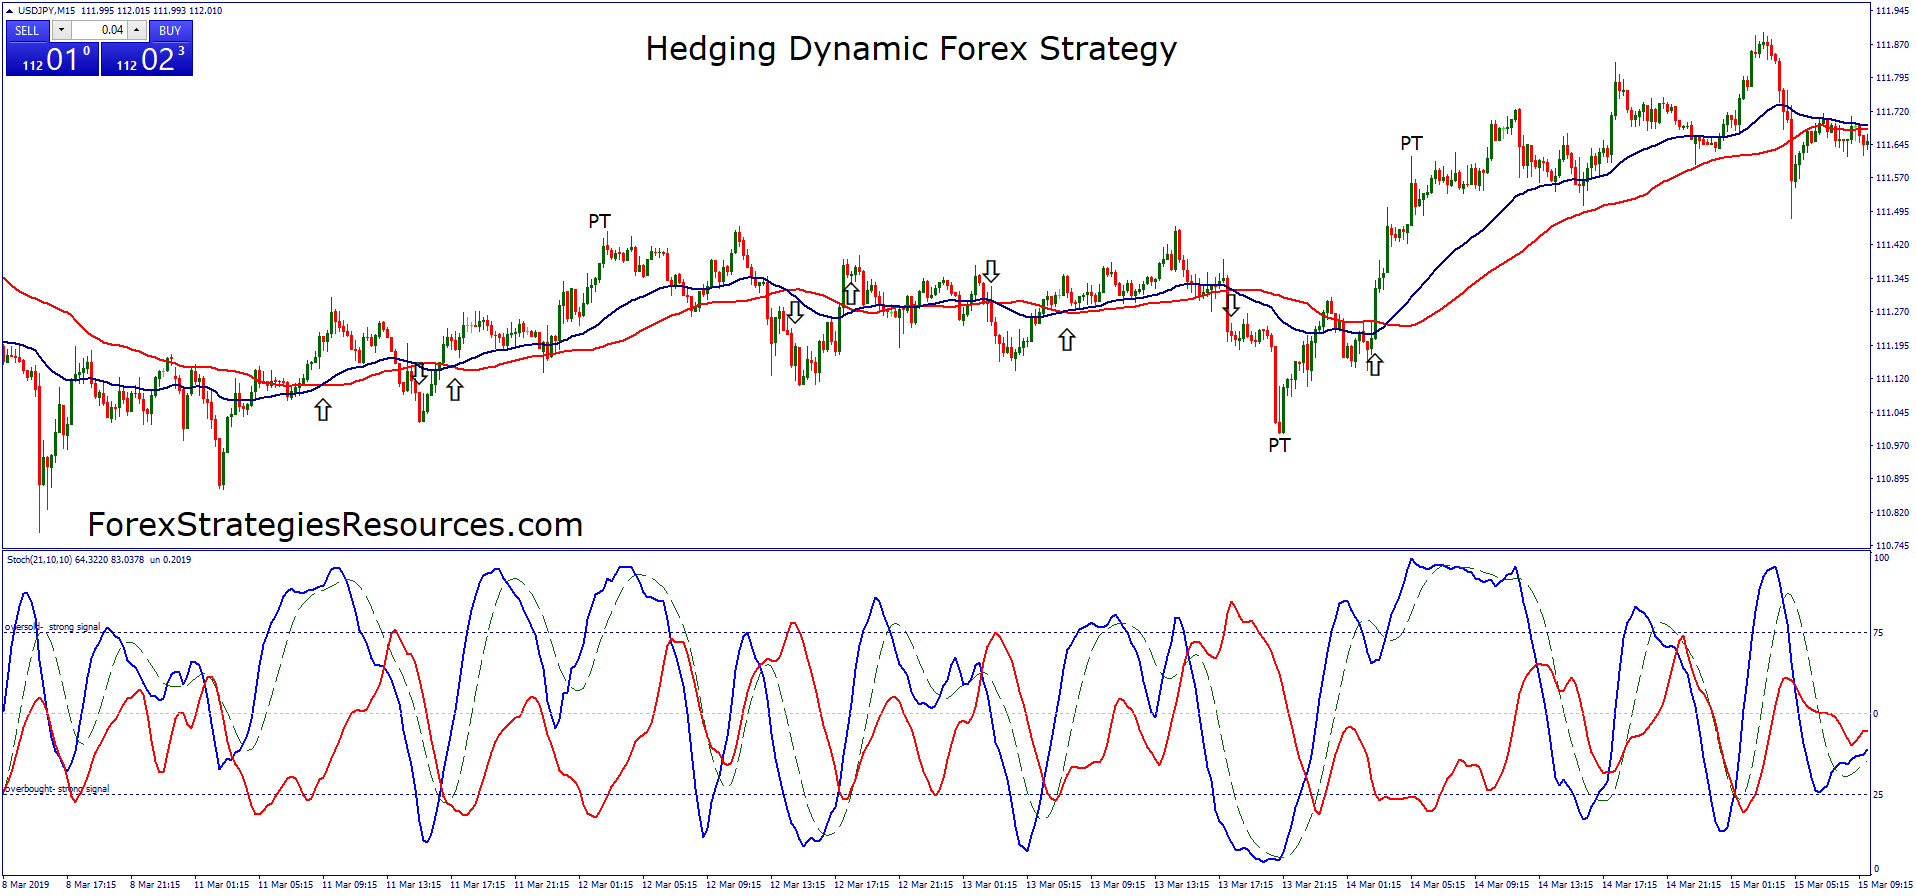 Currency options hedging and trading strategies